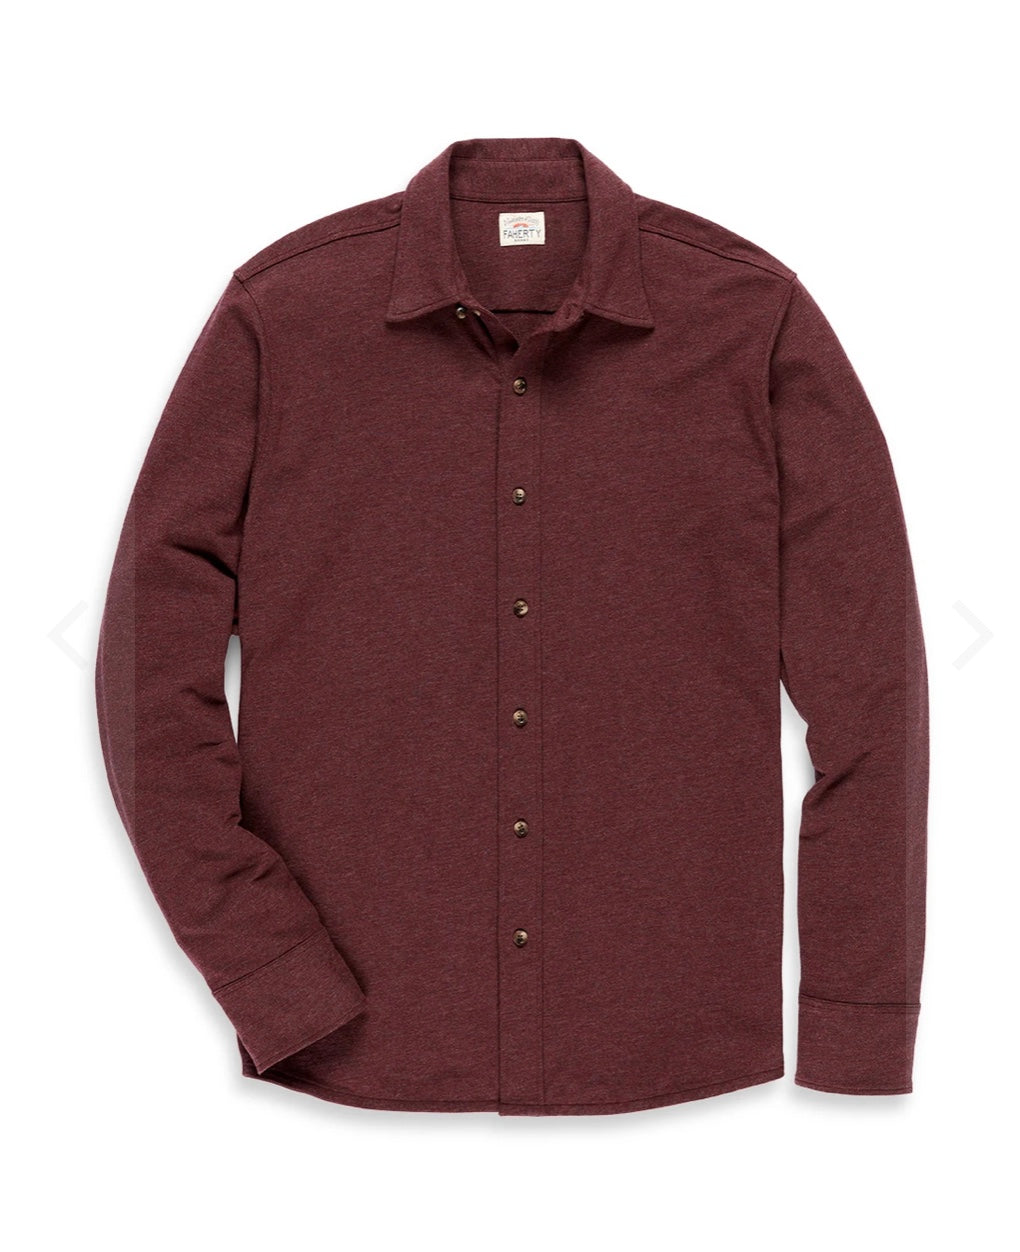 Faherty Stretch Knit Shirt